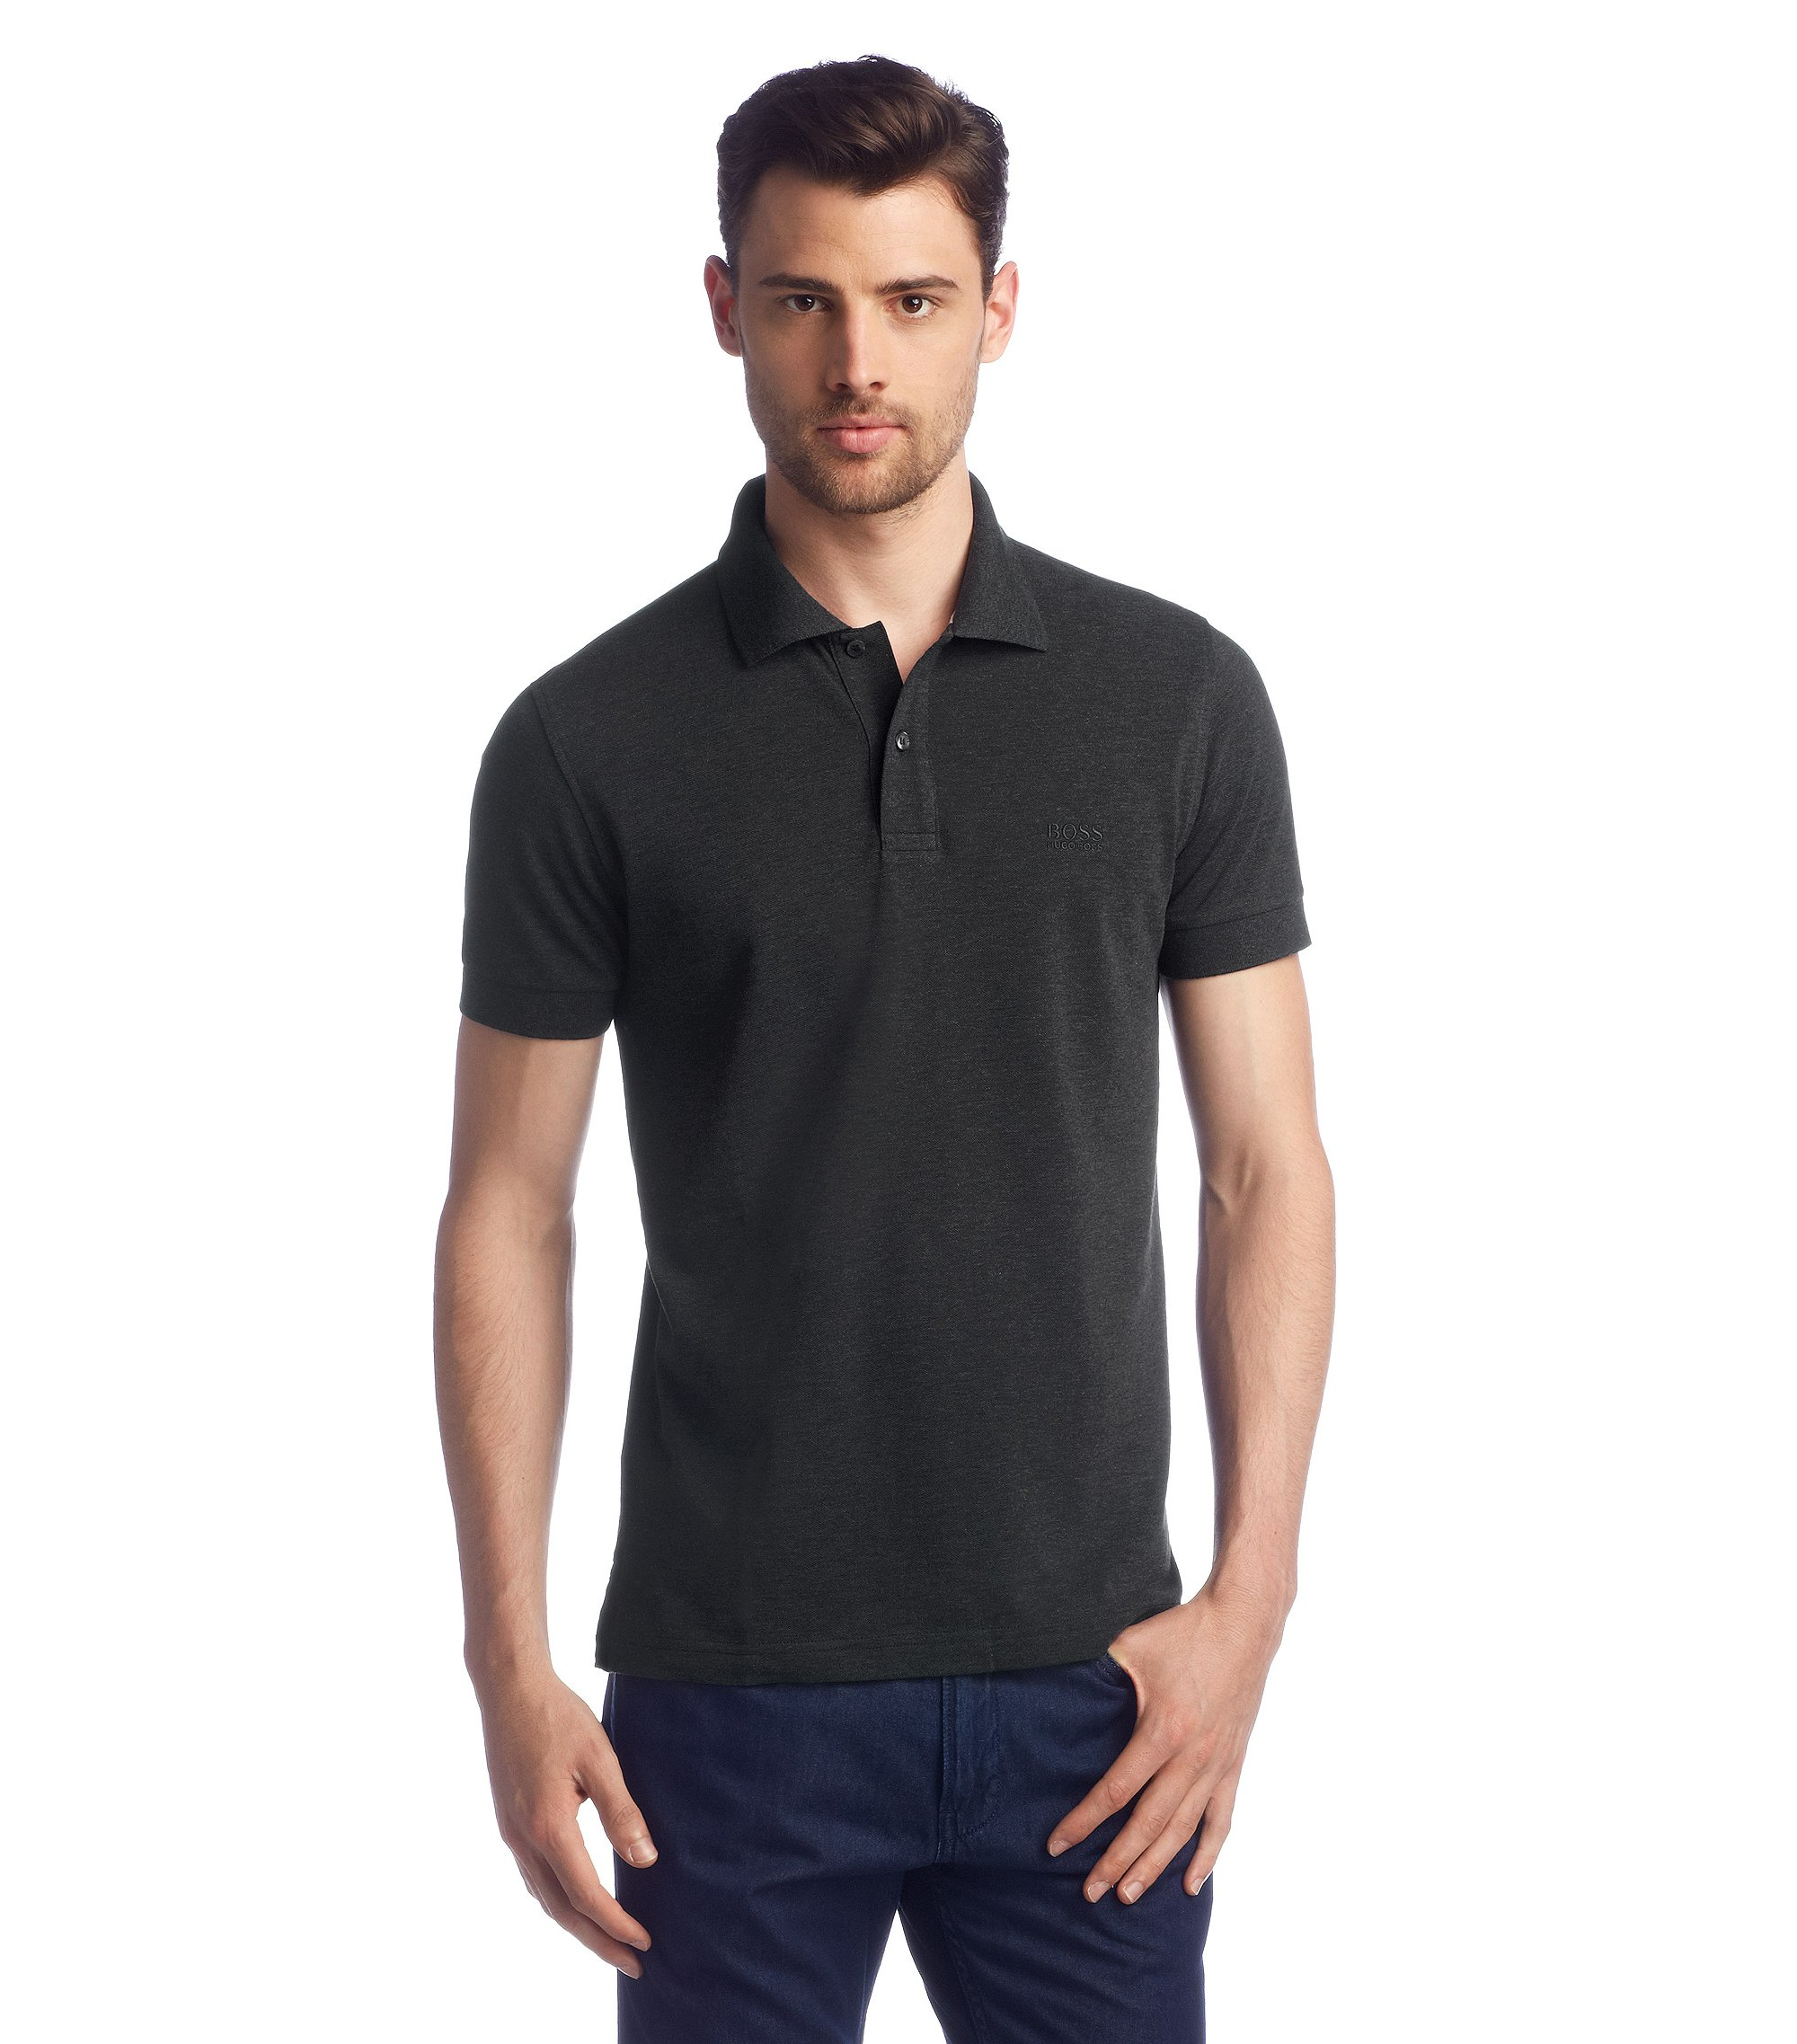 Polo shirt 'Firenze/Logo Modern Essential', Anthracite